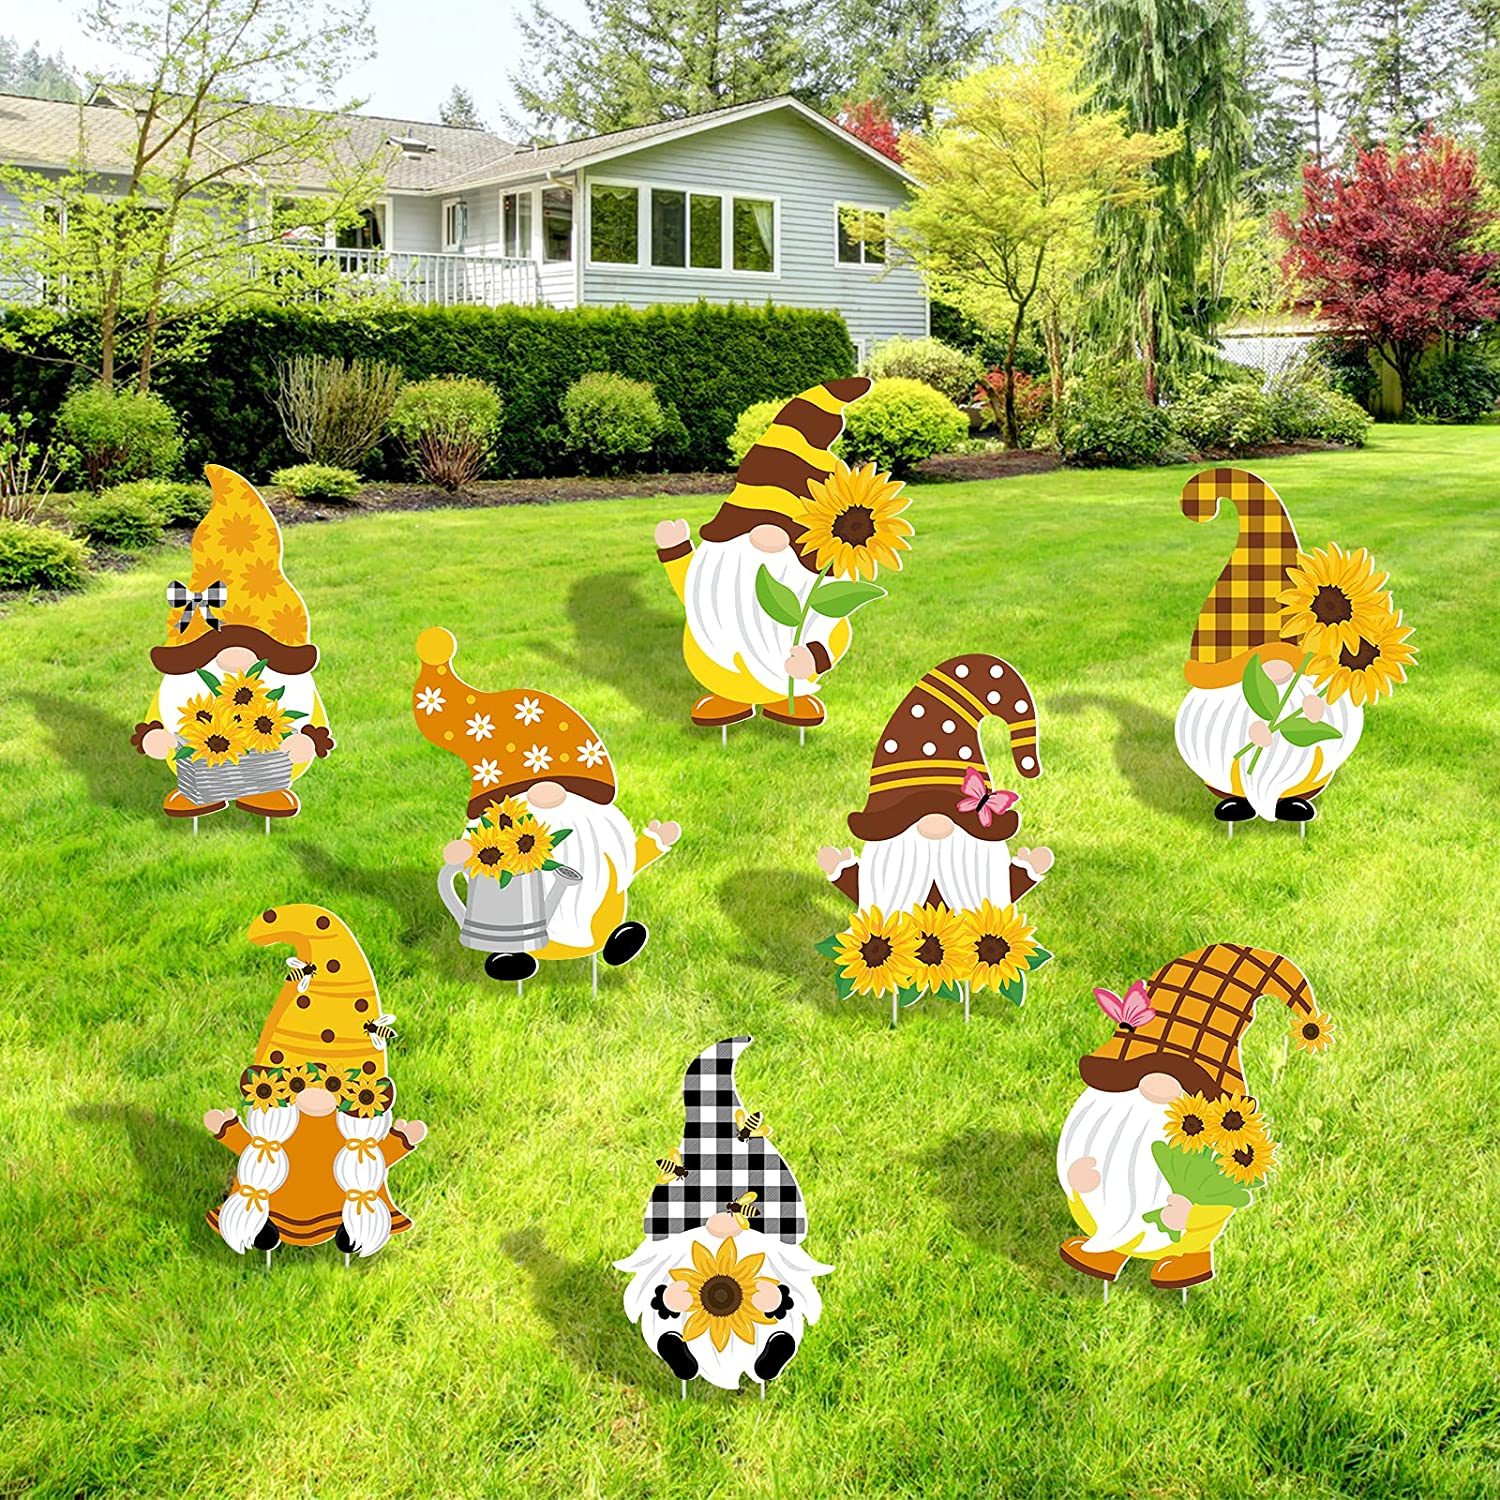 Sunflower Gnome Yard Sign Fall Decorations for Outdoor Sunshine Buffalo Plaid Gnomes Shaped Lawn Garden Sign with Stakes Yard Street Pathway Ornaments Spring Winter Welcome Home Gnomes Set of 8